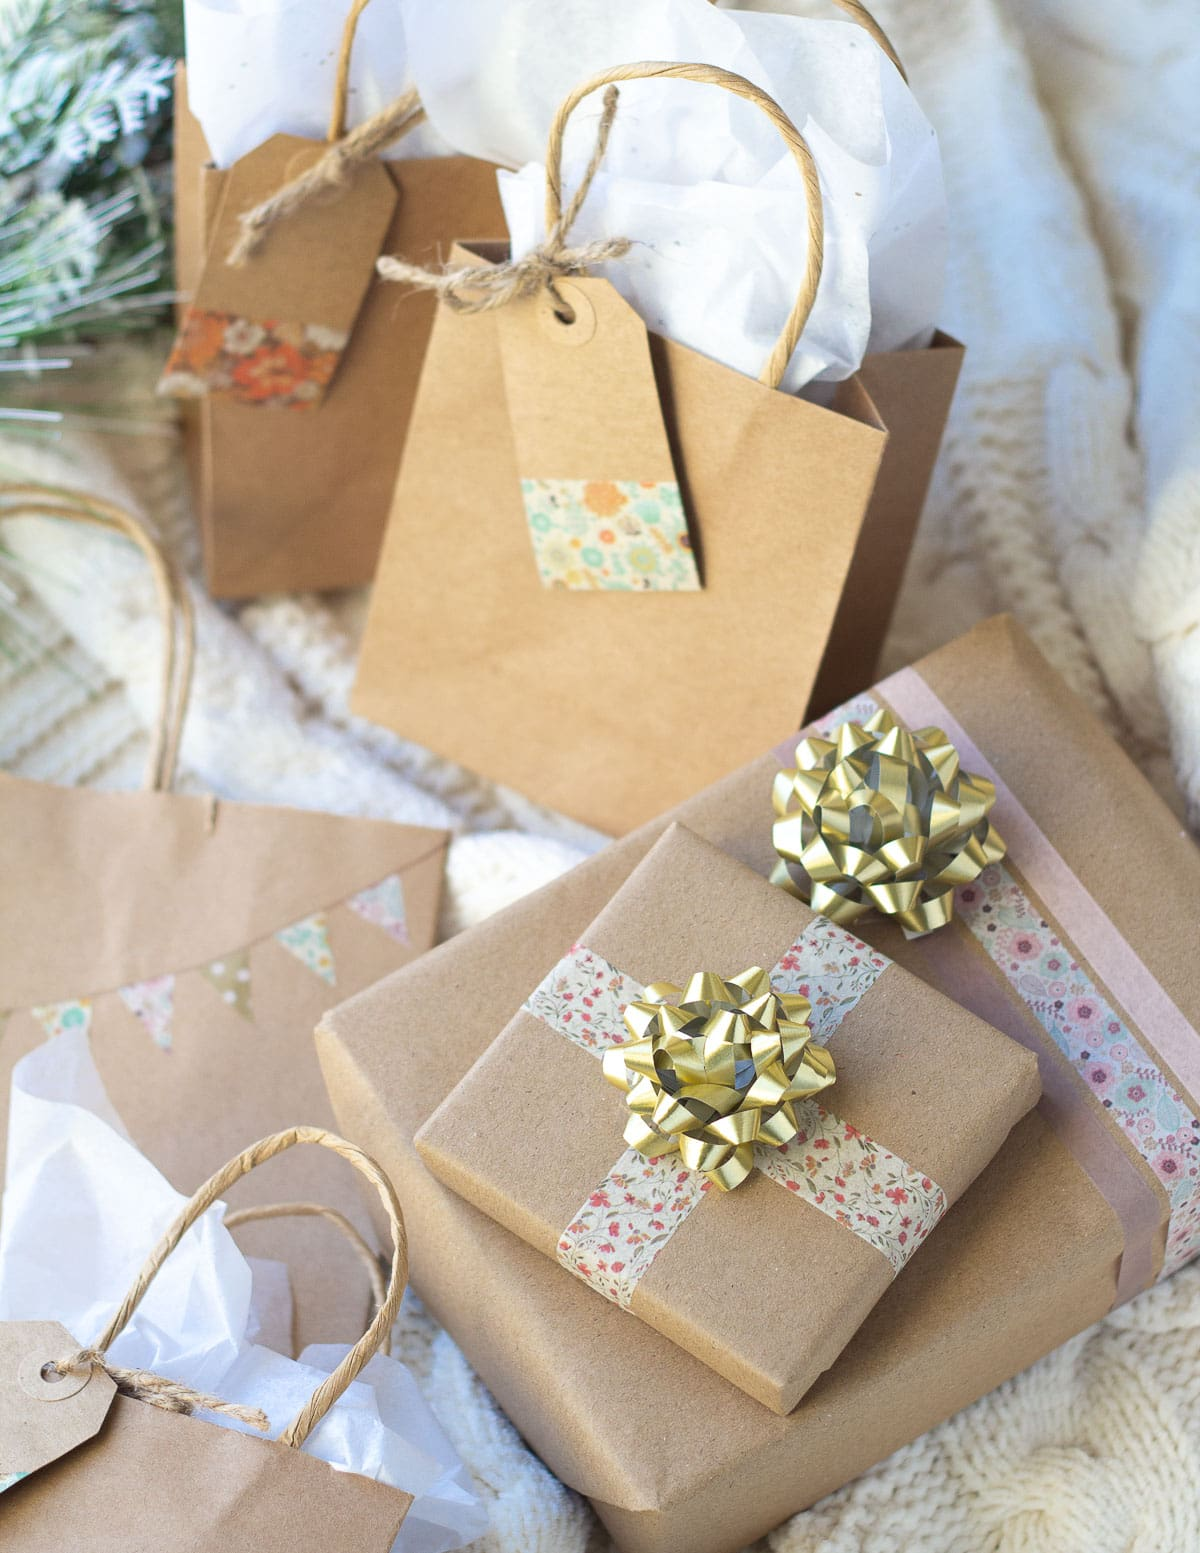 Brown paper gifts wrapped with washi tape and topped with bows.